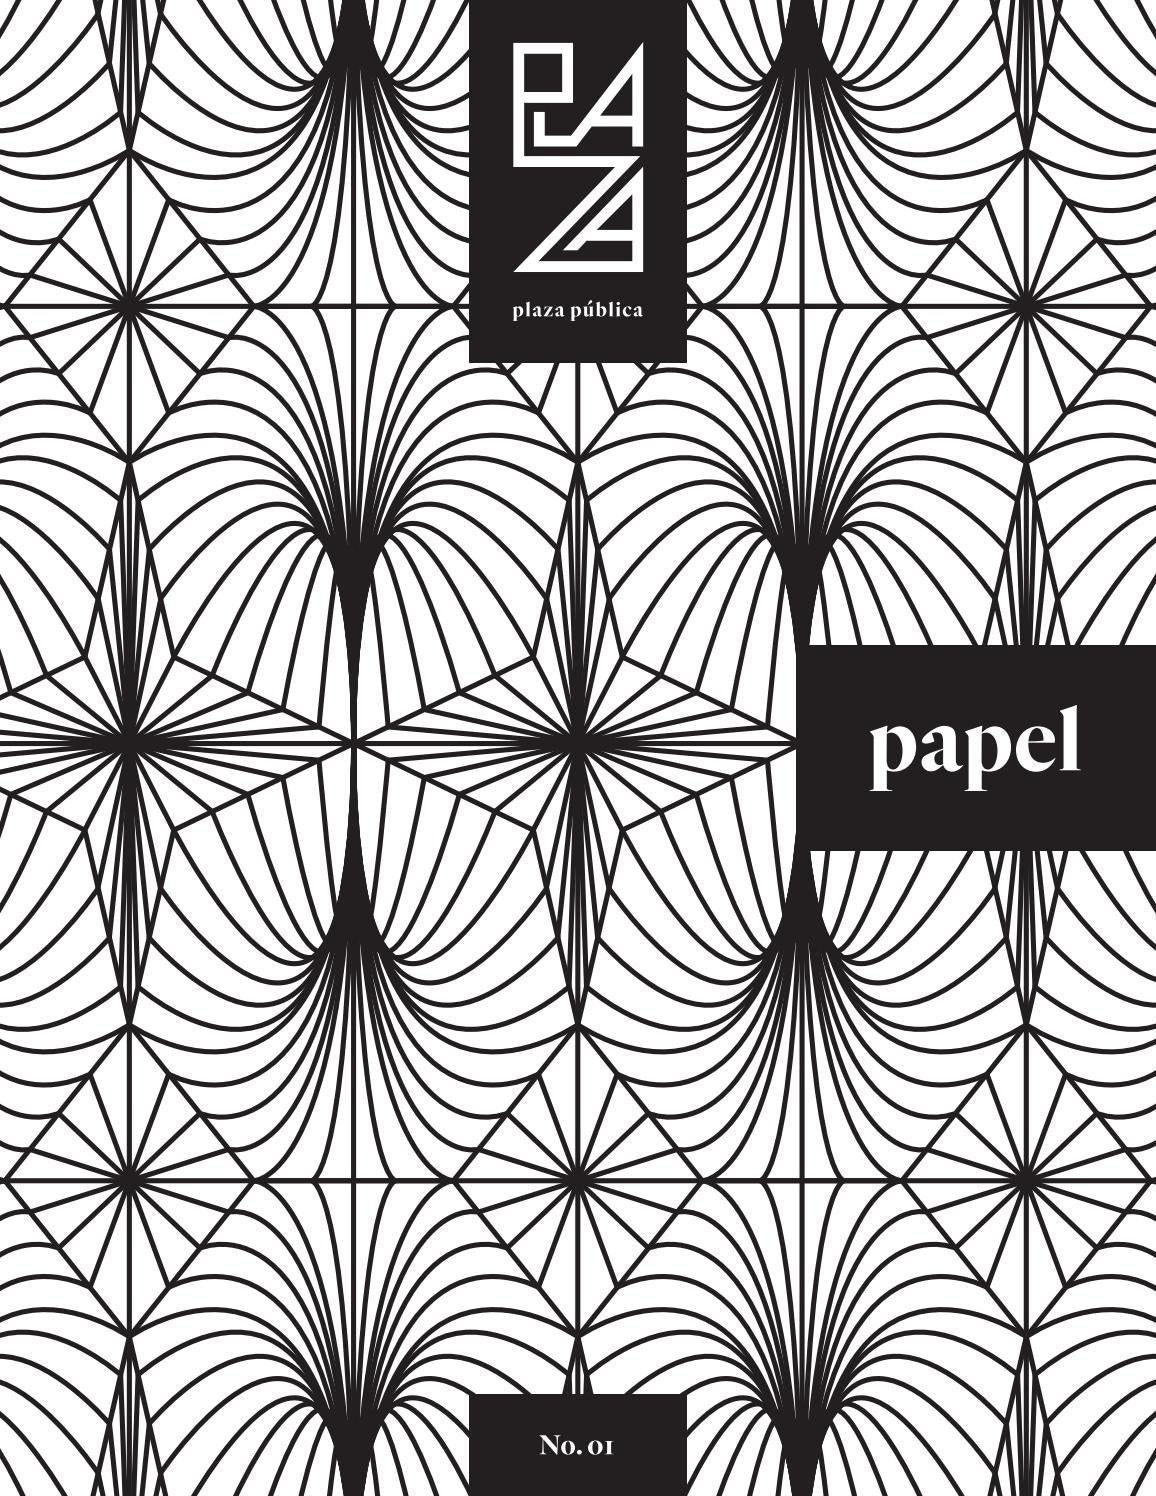 Plaza Papel by plaza en papel - issuu